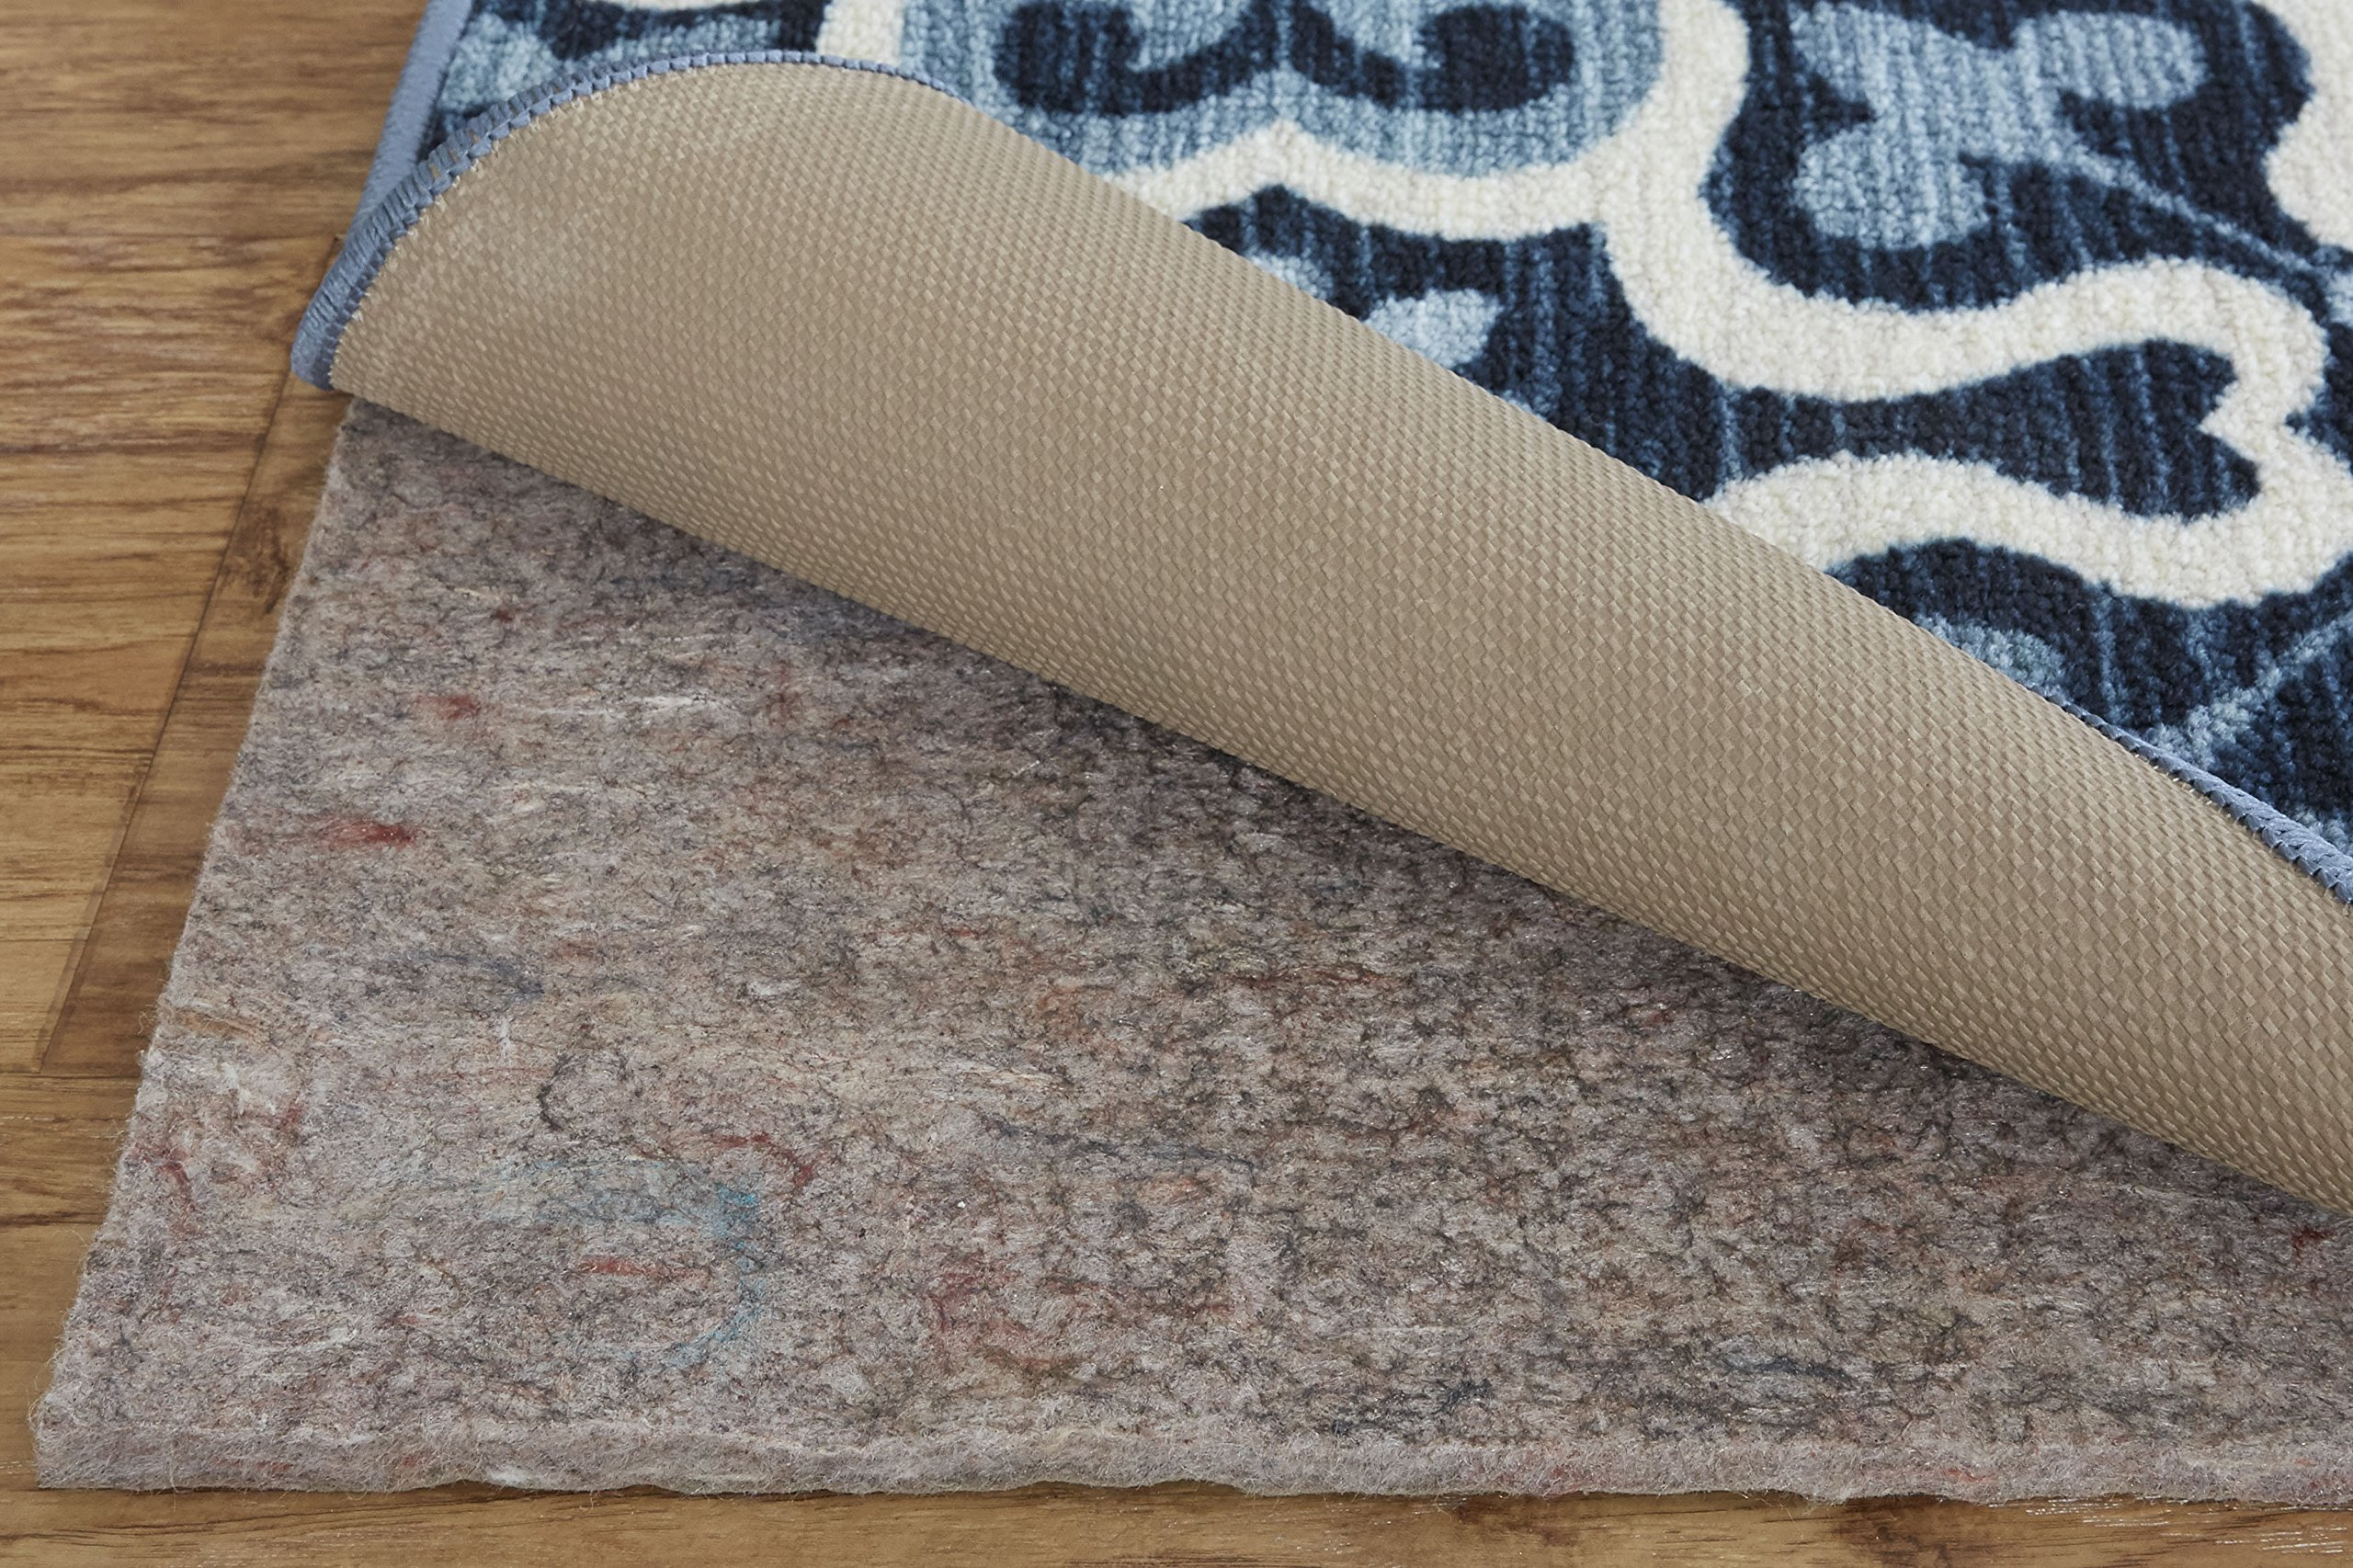 Mohawk Home Dual Surface Felt Non Slip Rug Pad, 11'10 x 13'10, 1/4 Inch Thick, Safe for All Floors by Mohawk Home